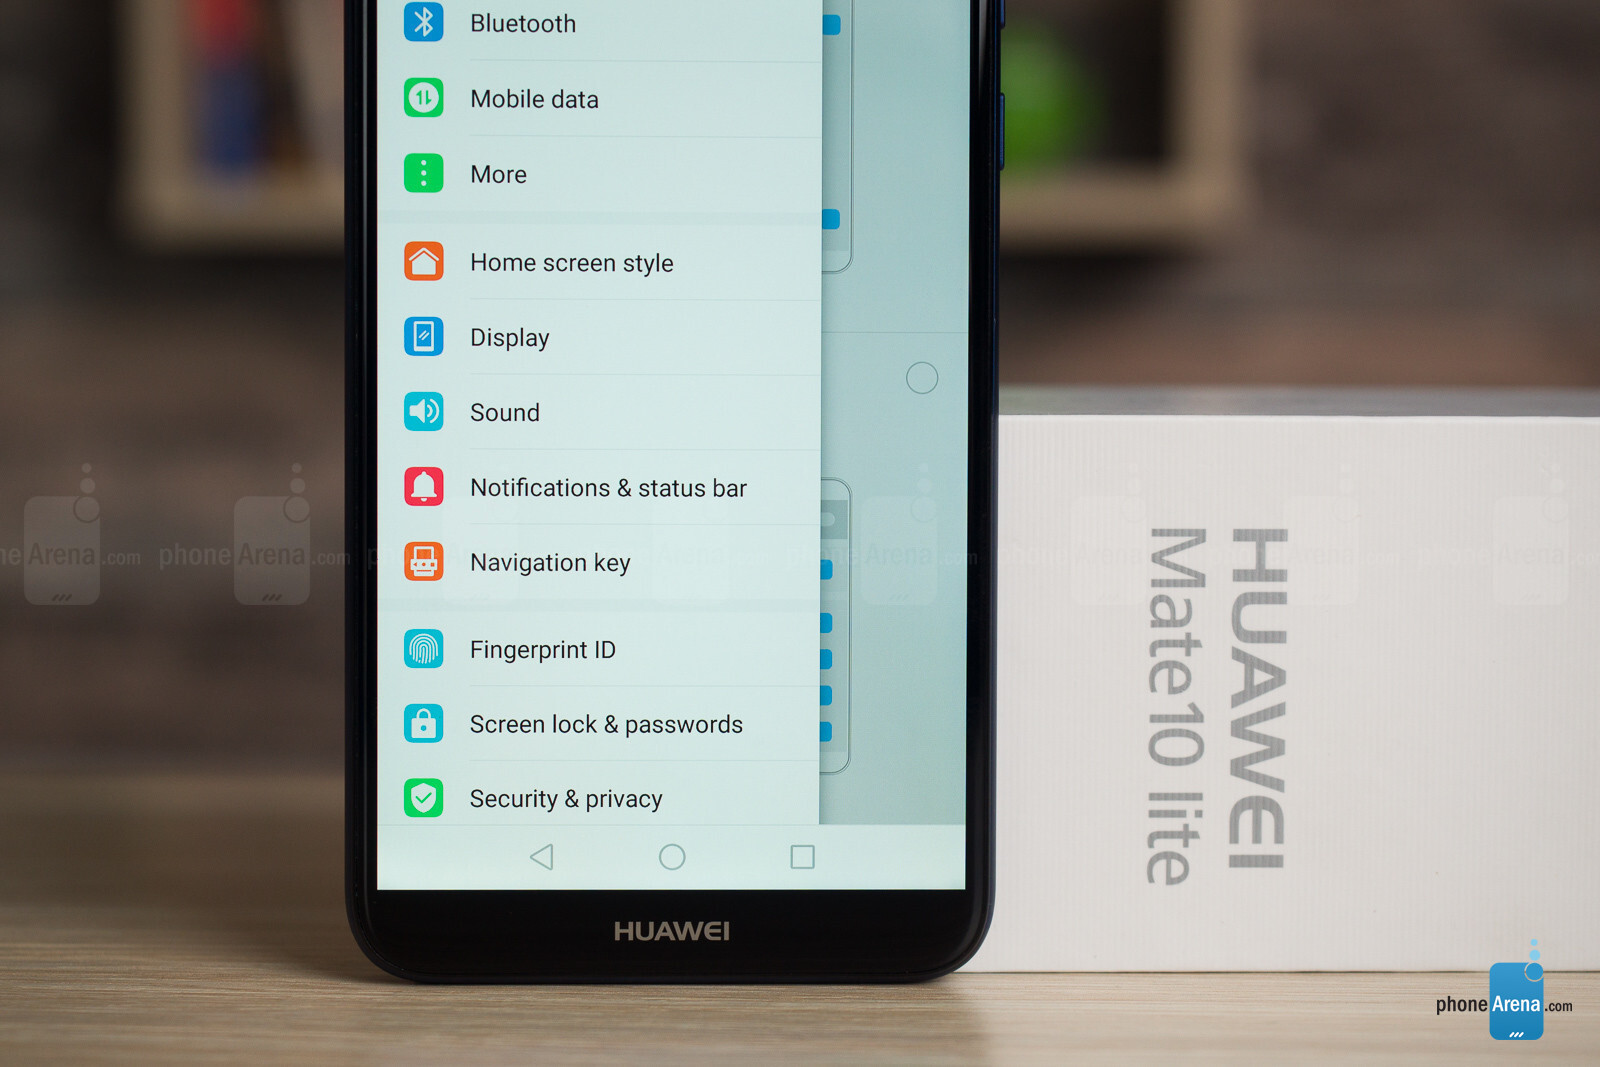 Huawei Mate 10 Lite Review - PhoneArena